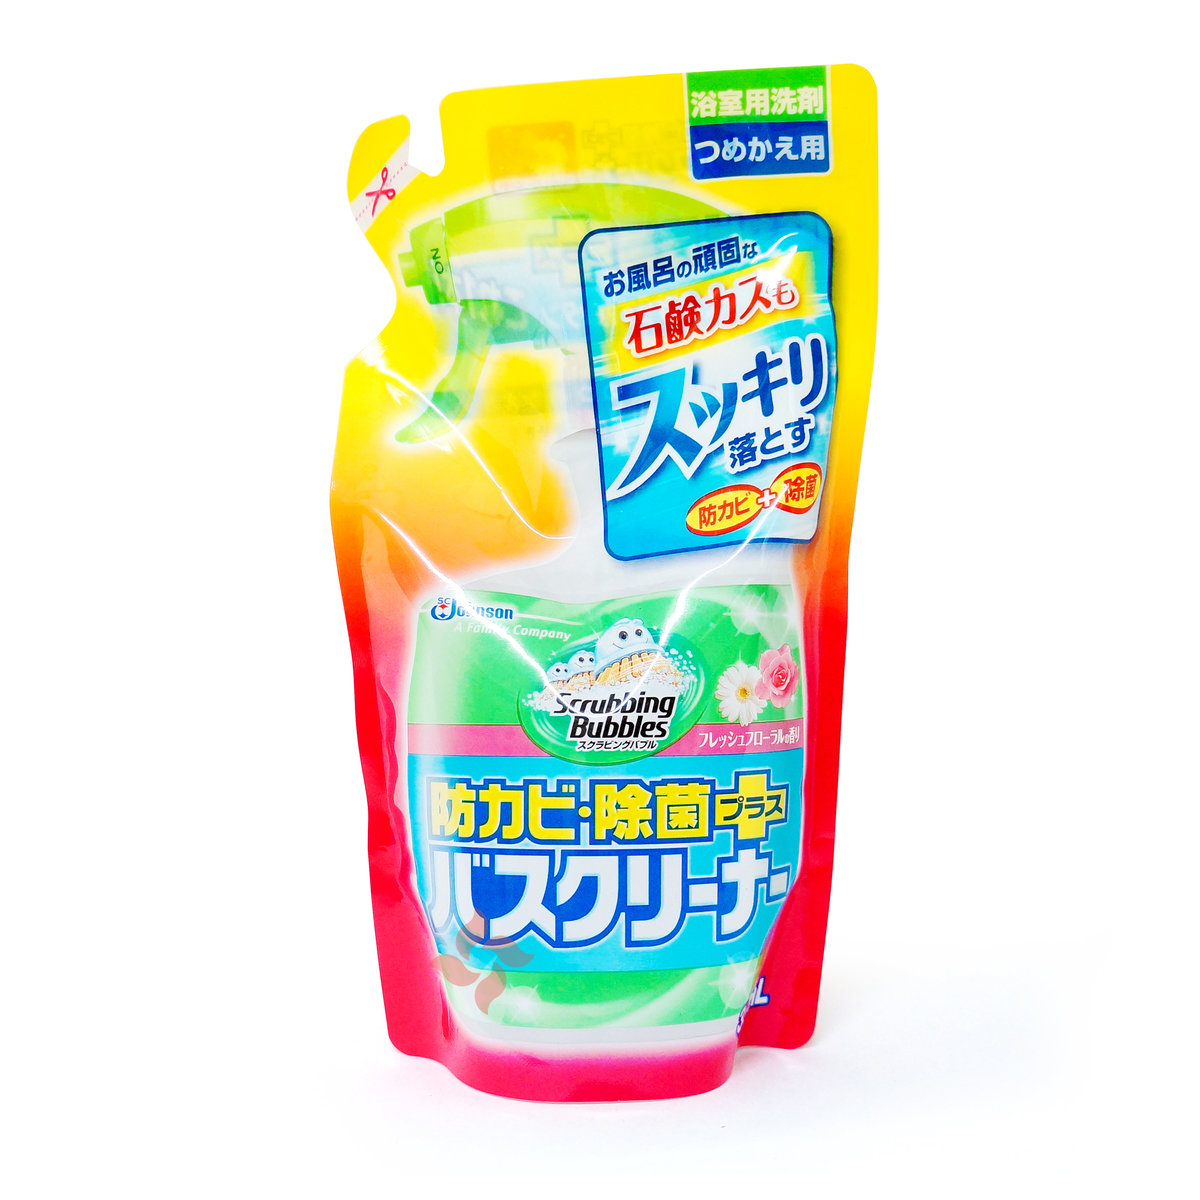 Scrubbing bubble Antifungal and disinfectant Cleaner Fruit Scent Refill 350ml(4901609008755)